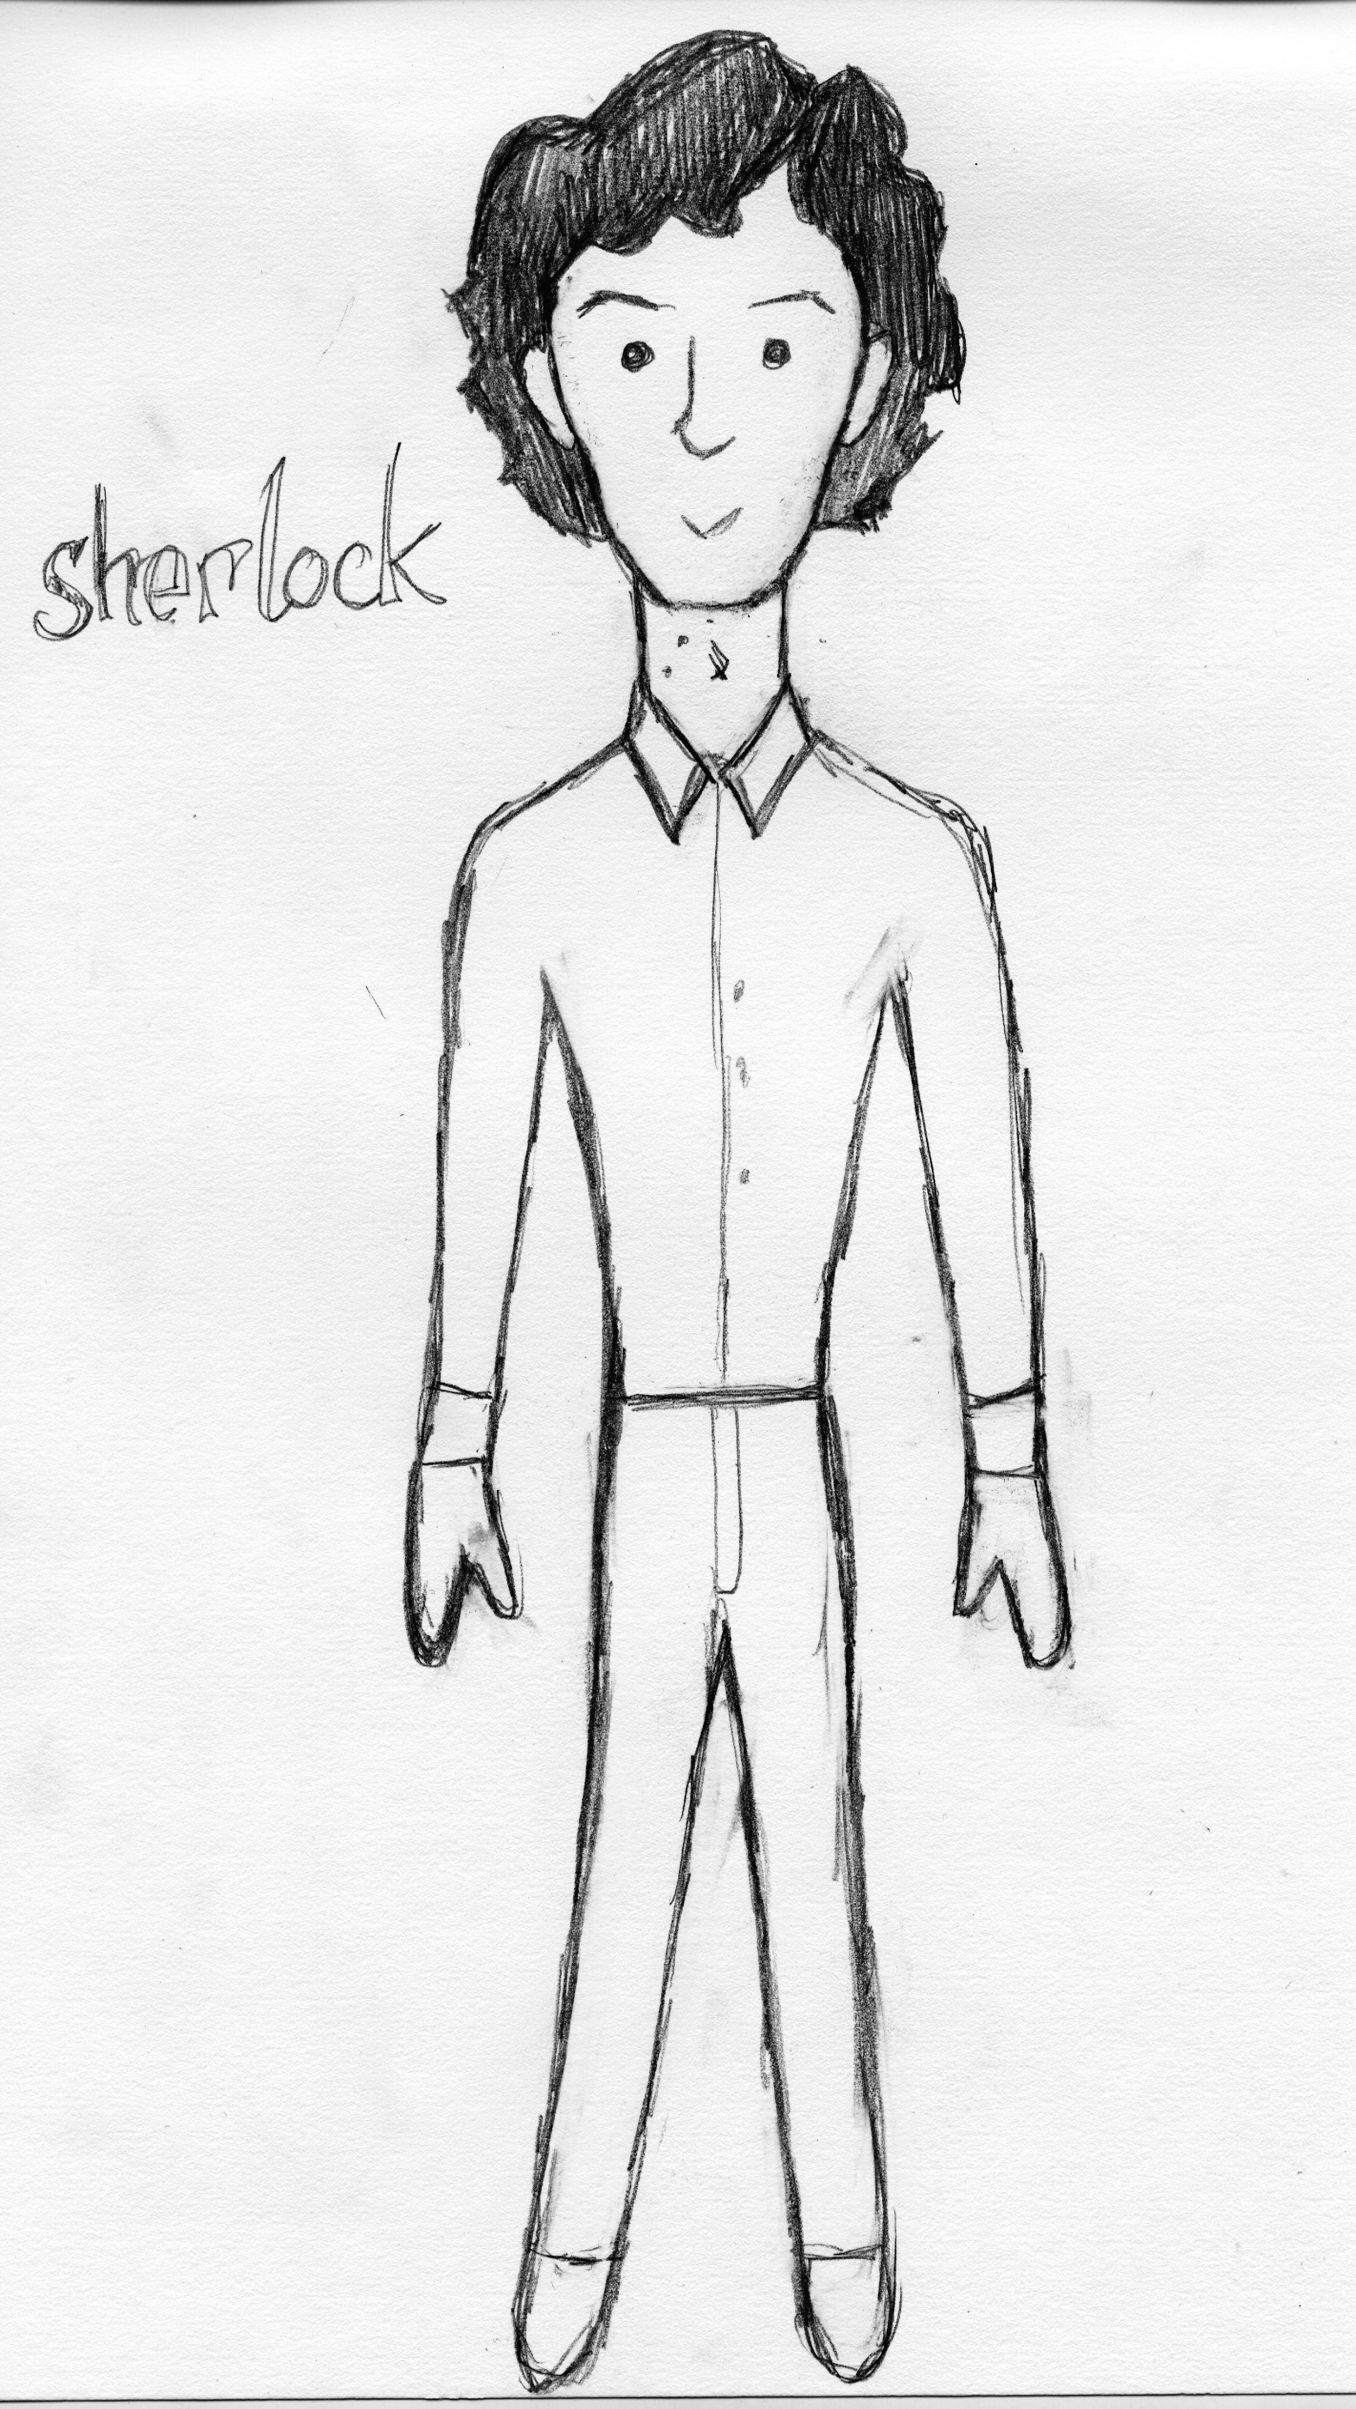 Sherlock Plush Doll sketch